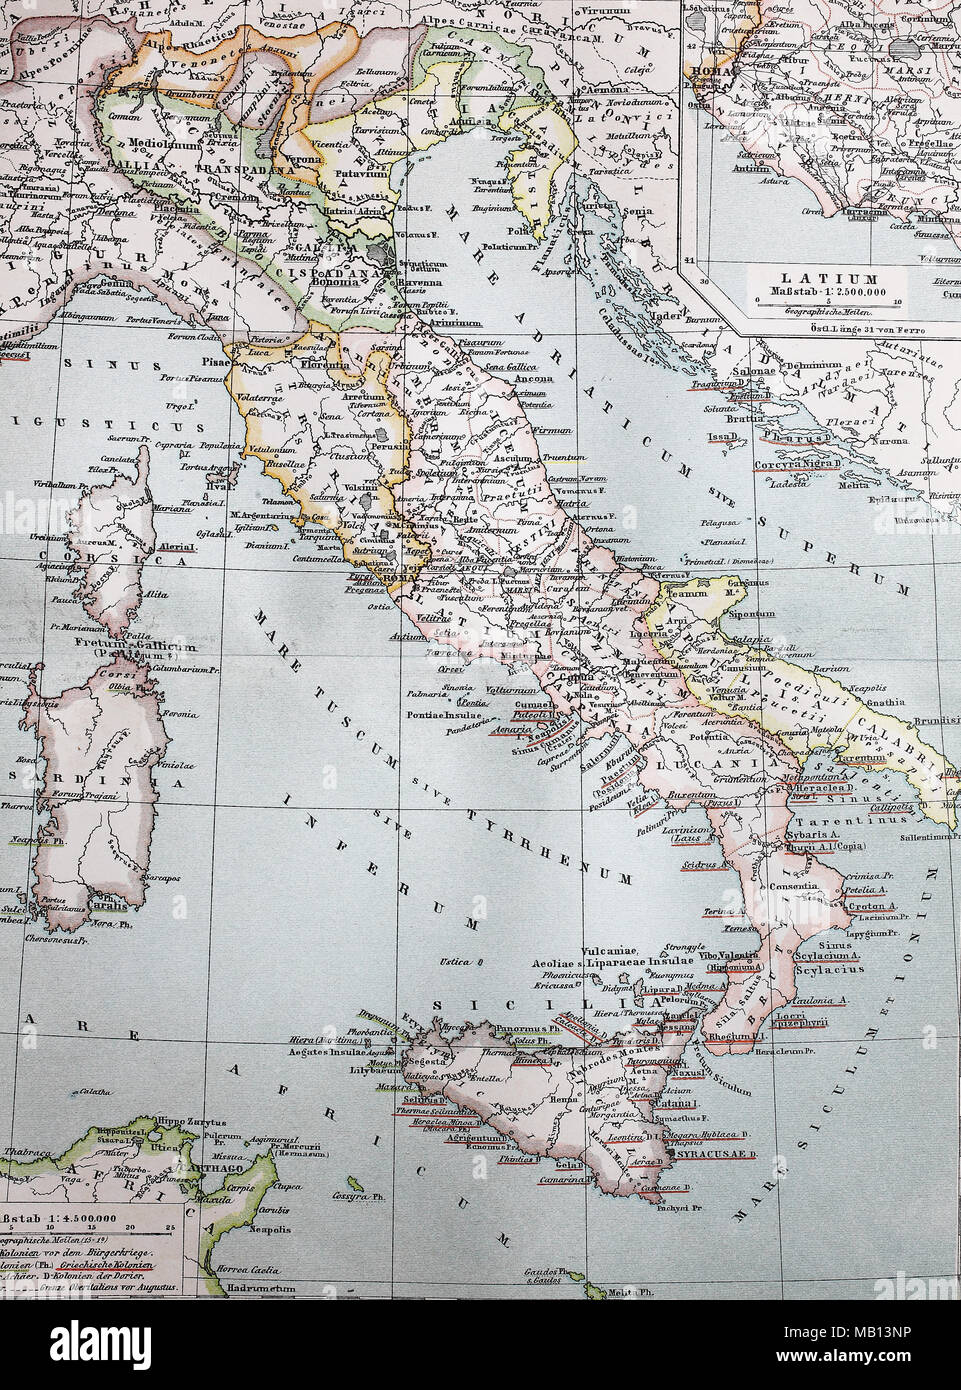 Landkarte von Italien im Jahre 1895, map of Italy, digital improved reproduction of an original print from the year 1895 - Stock Image